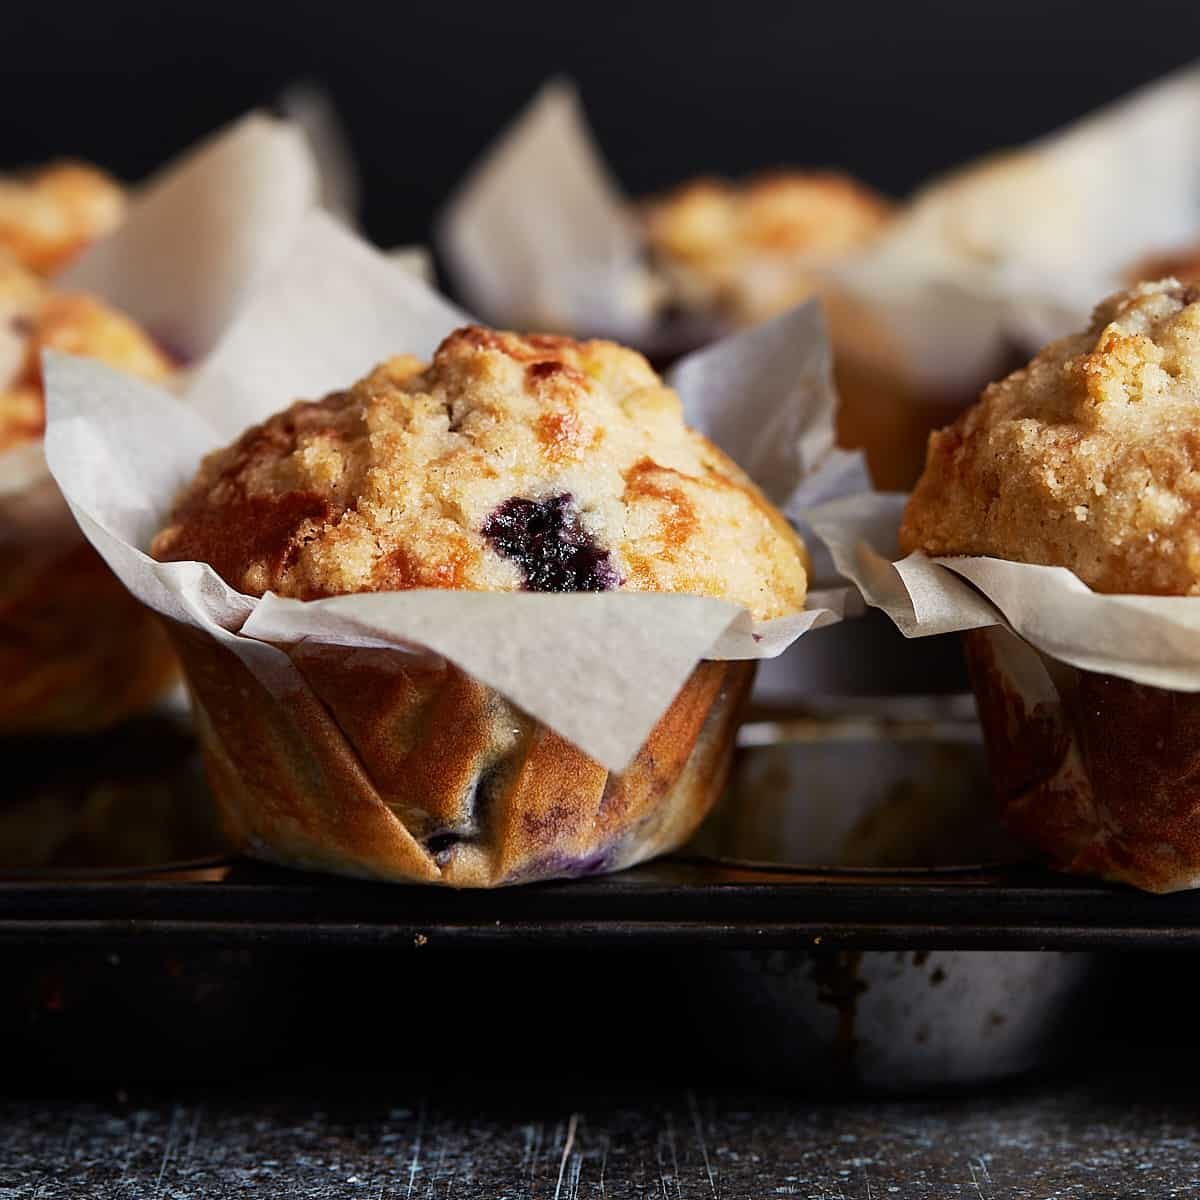 Muffin wrapped in paper on dark background